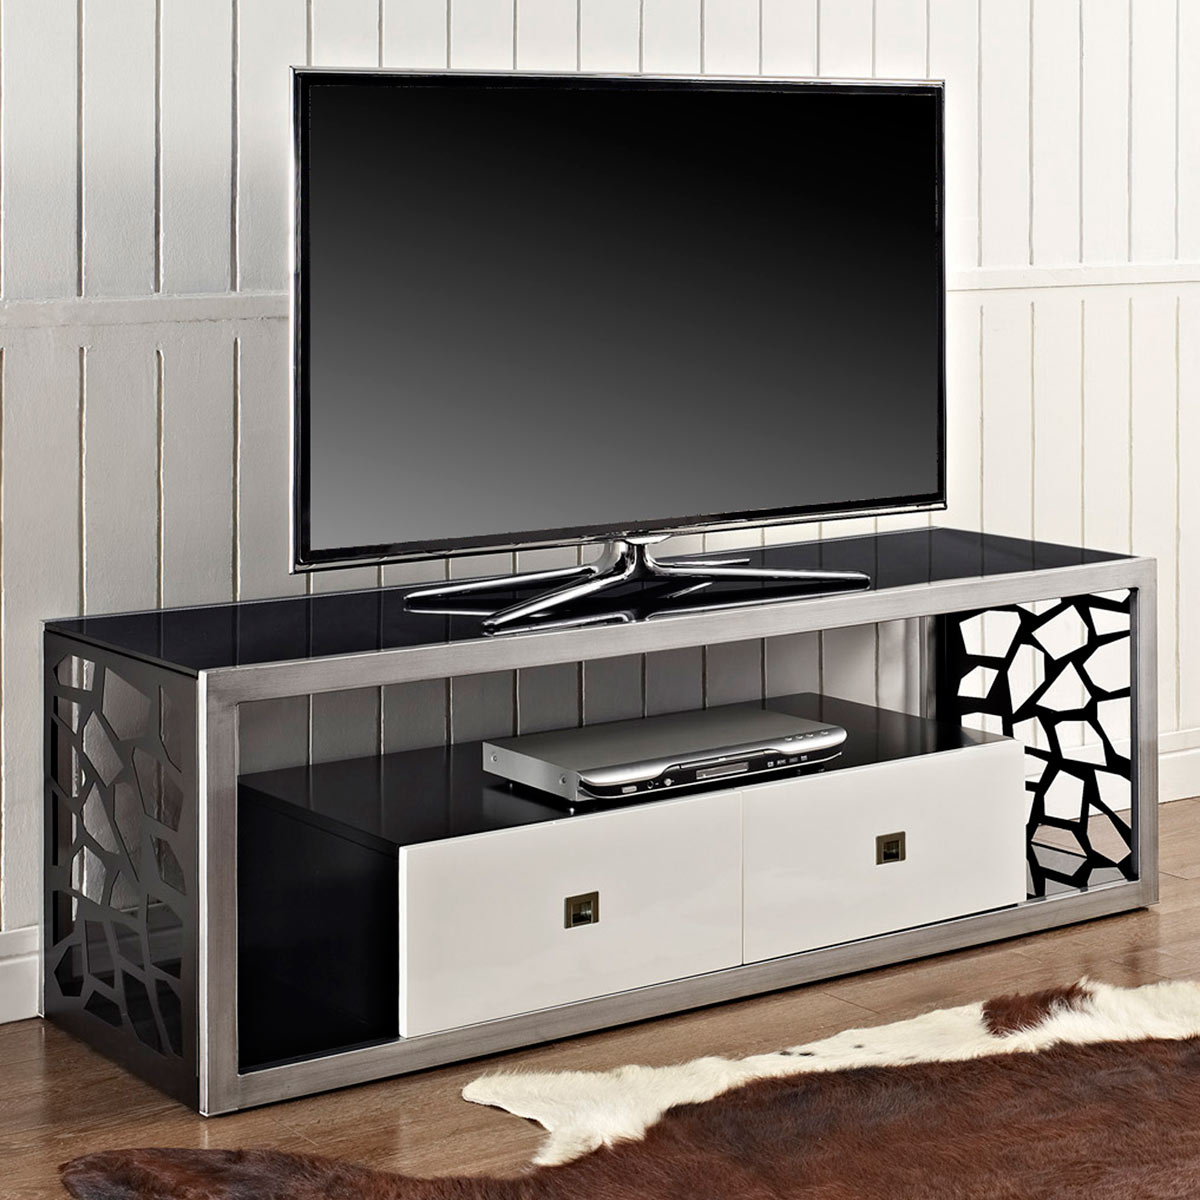 Modern Mosaic 60 Inch Steel TV Stand   Brushed Silver, 2 Drawers   WAL  ...